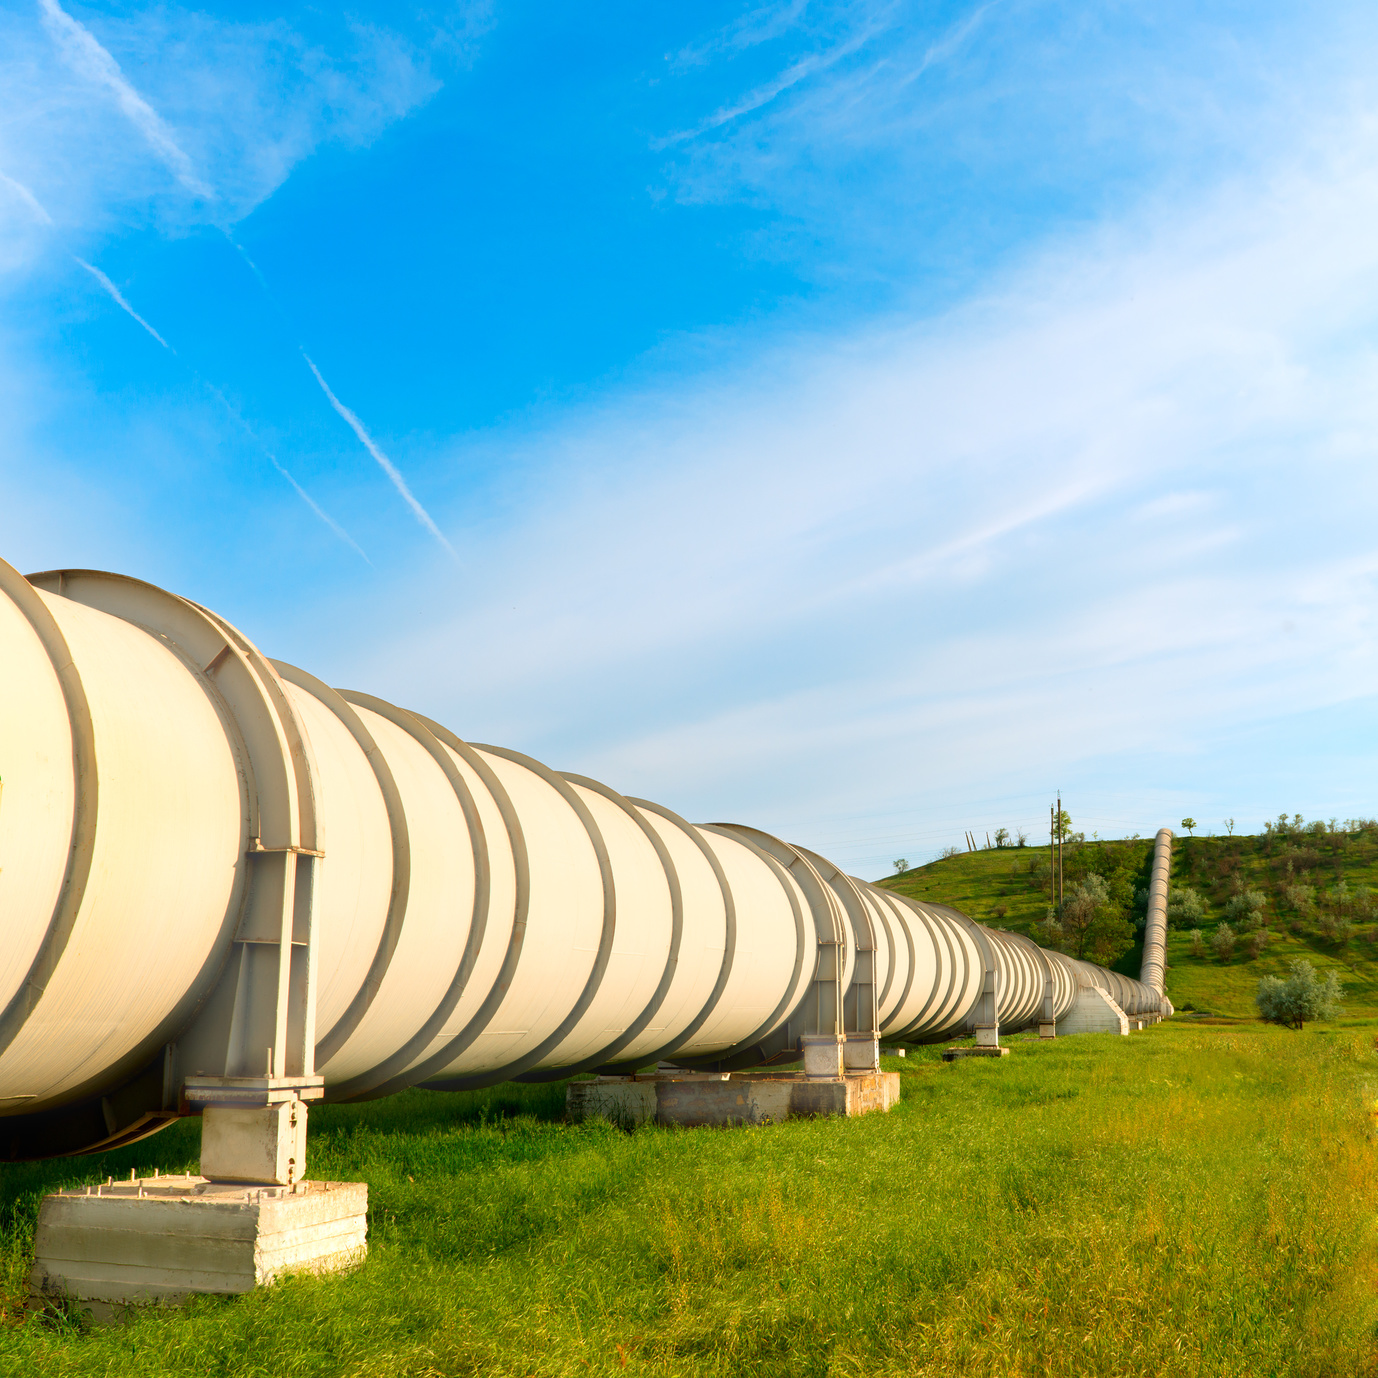 Fotolia_52775842_High Pressure Pipeline_M